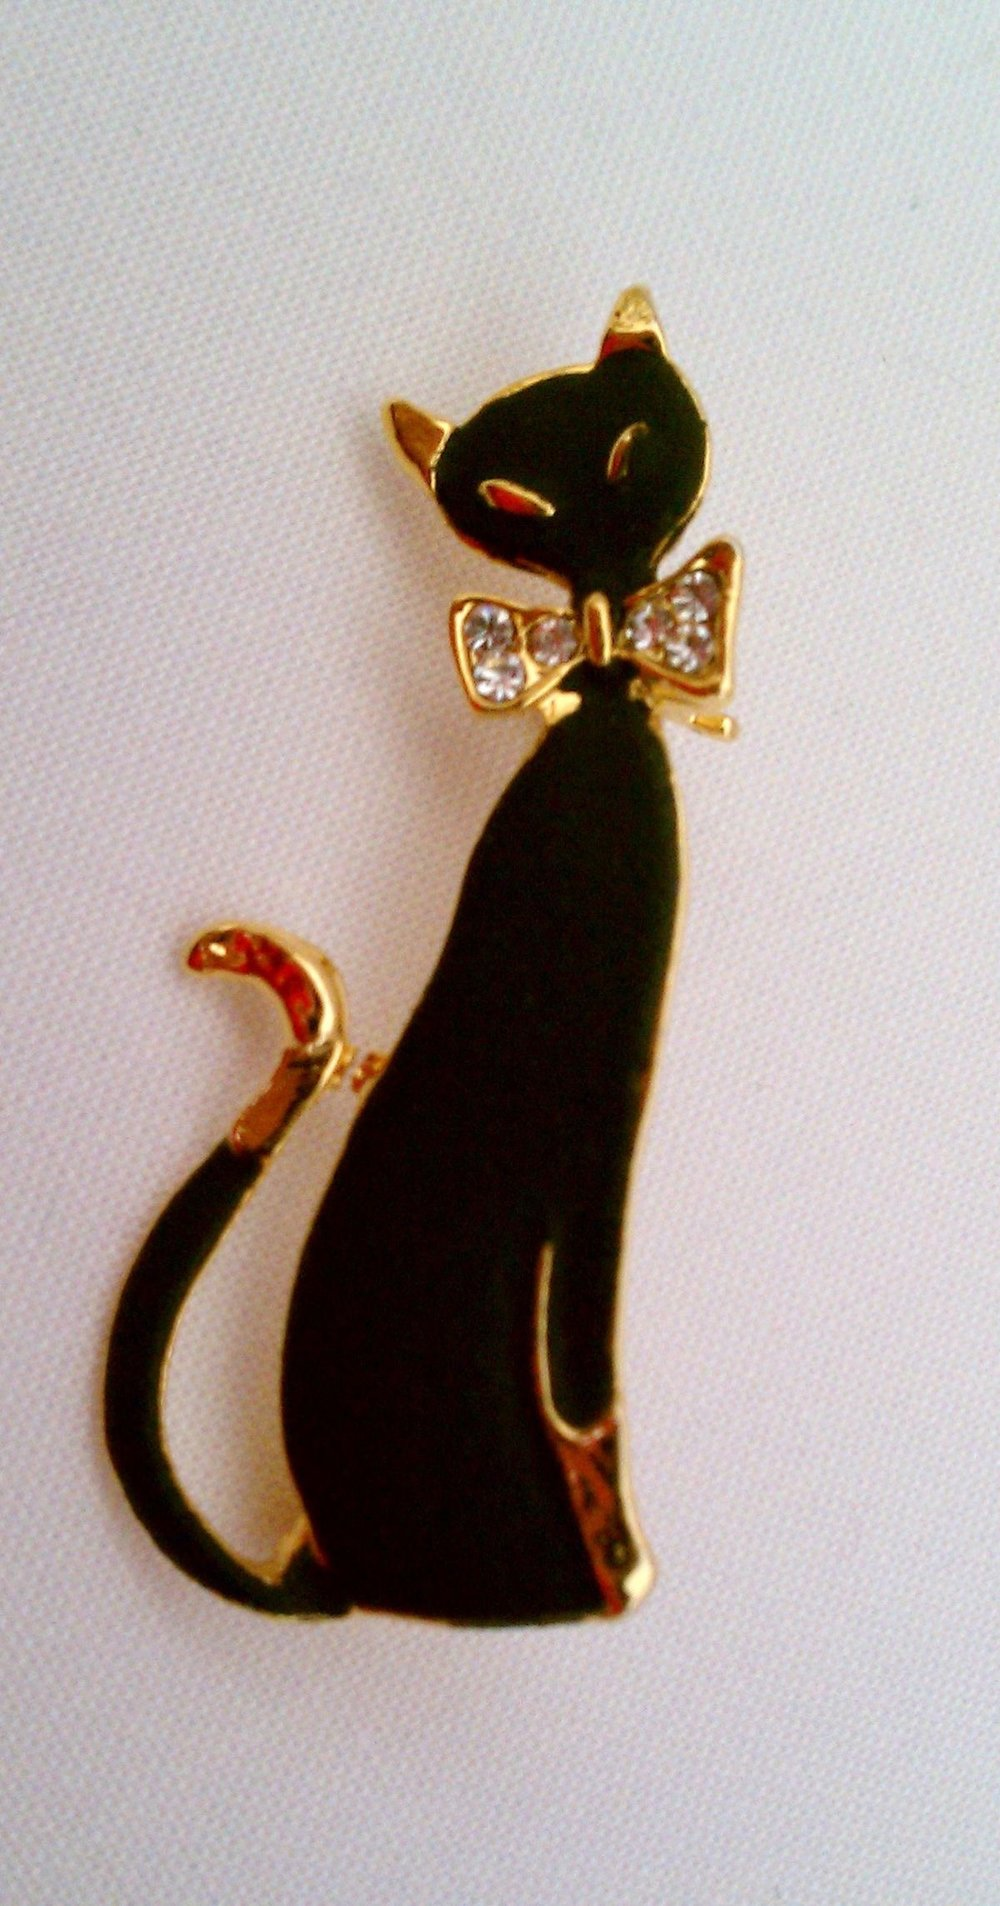 Black cat pin that belonged to my mother and now belongs to one of her granddaughters.